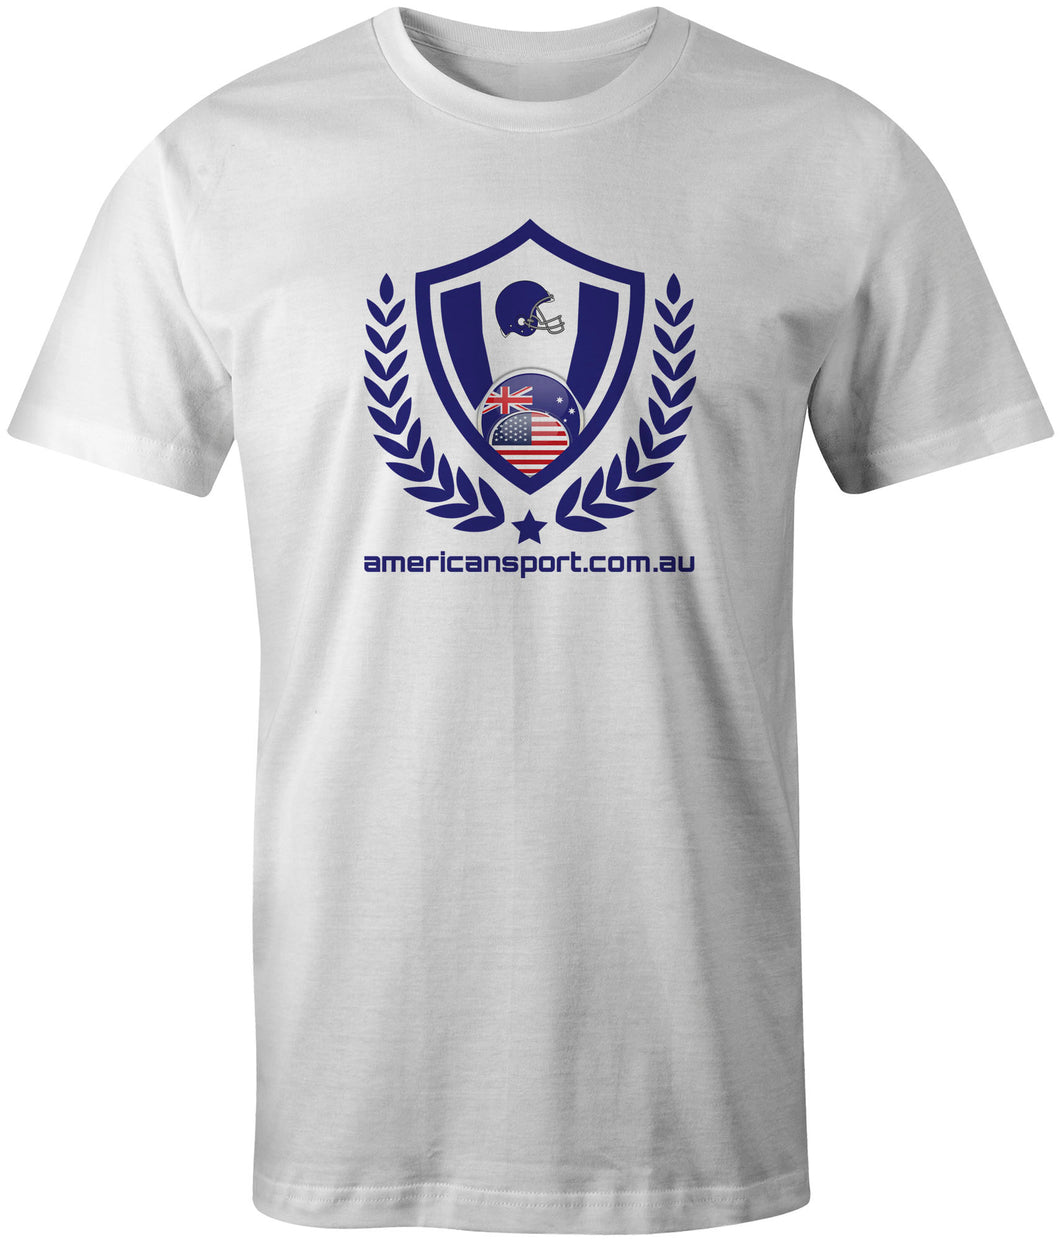 American Sport Branded T-Shirts Special Offer